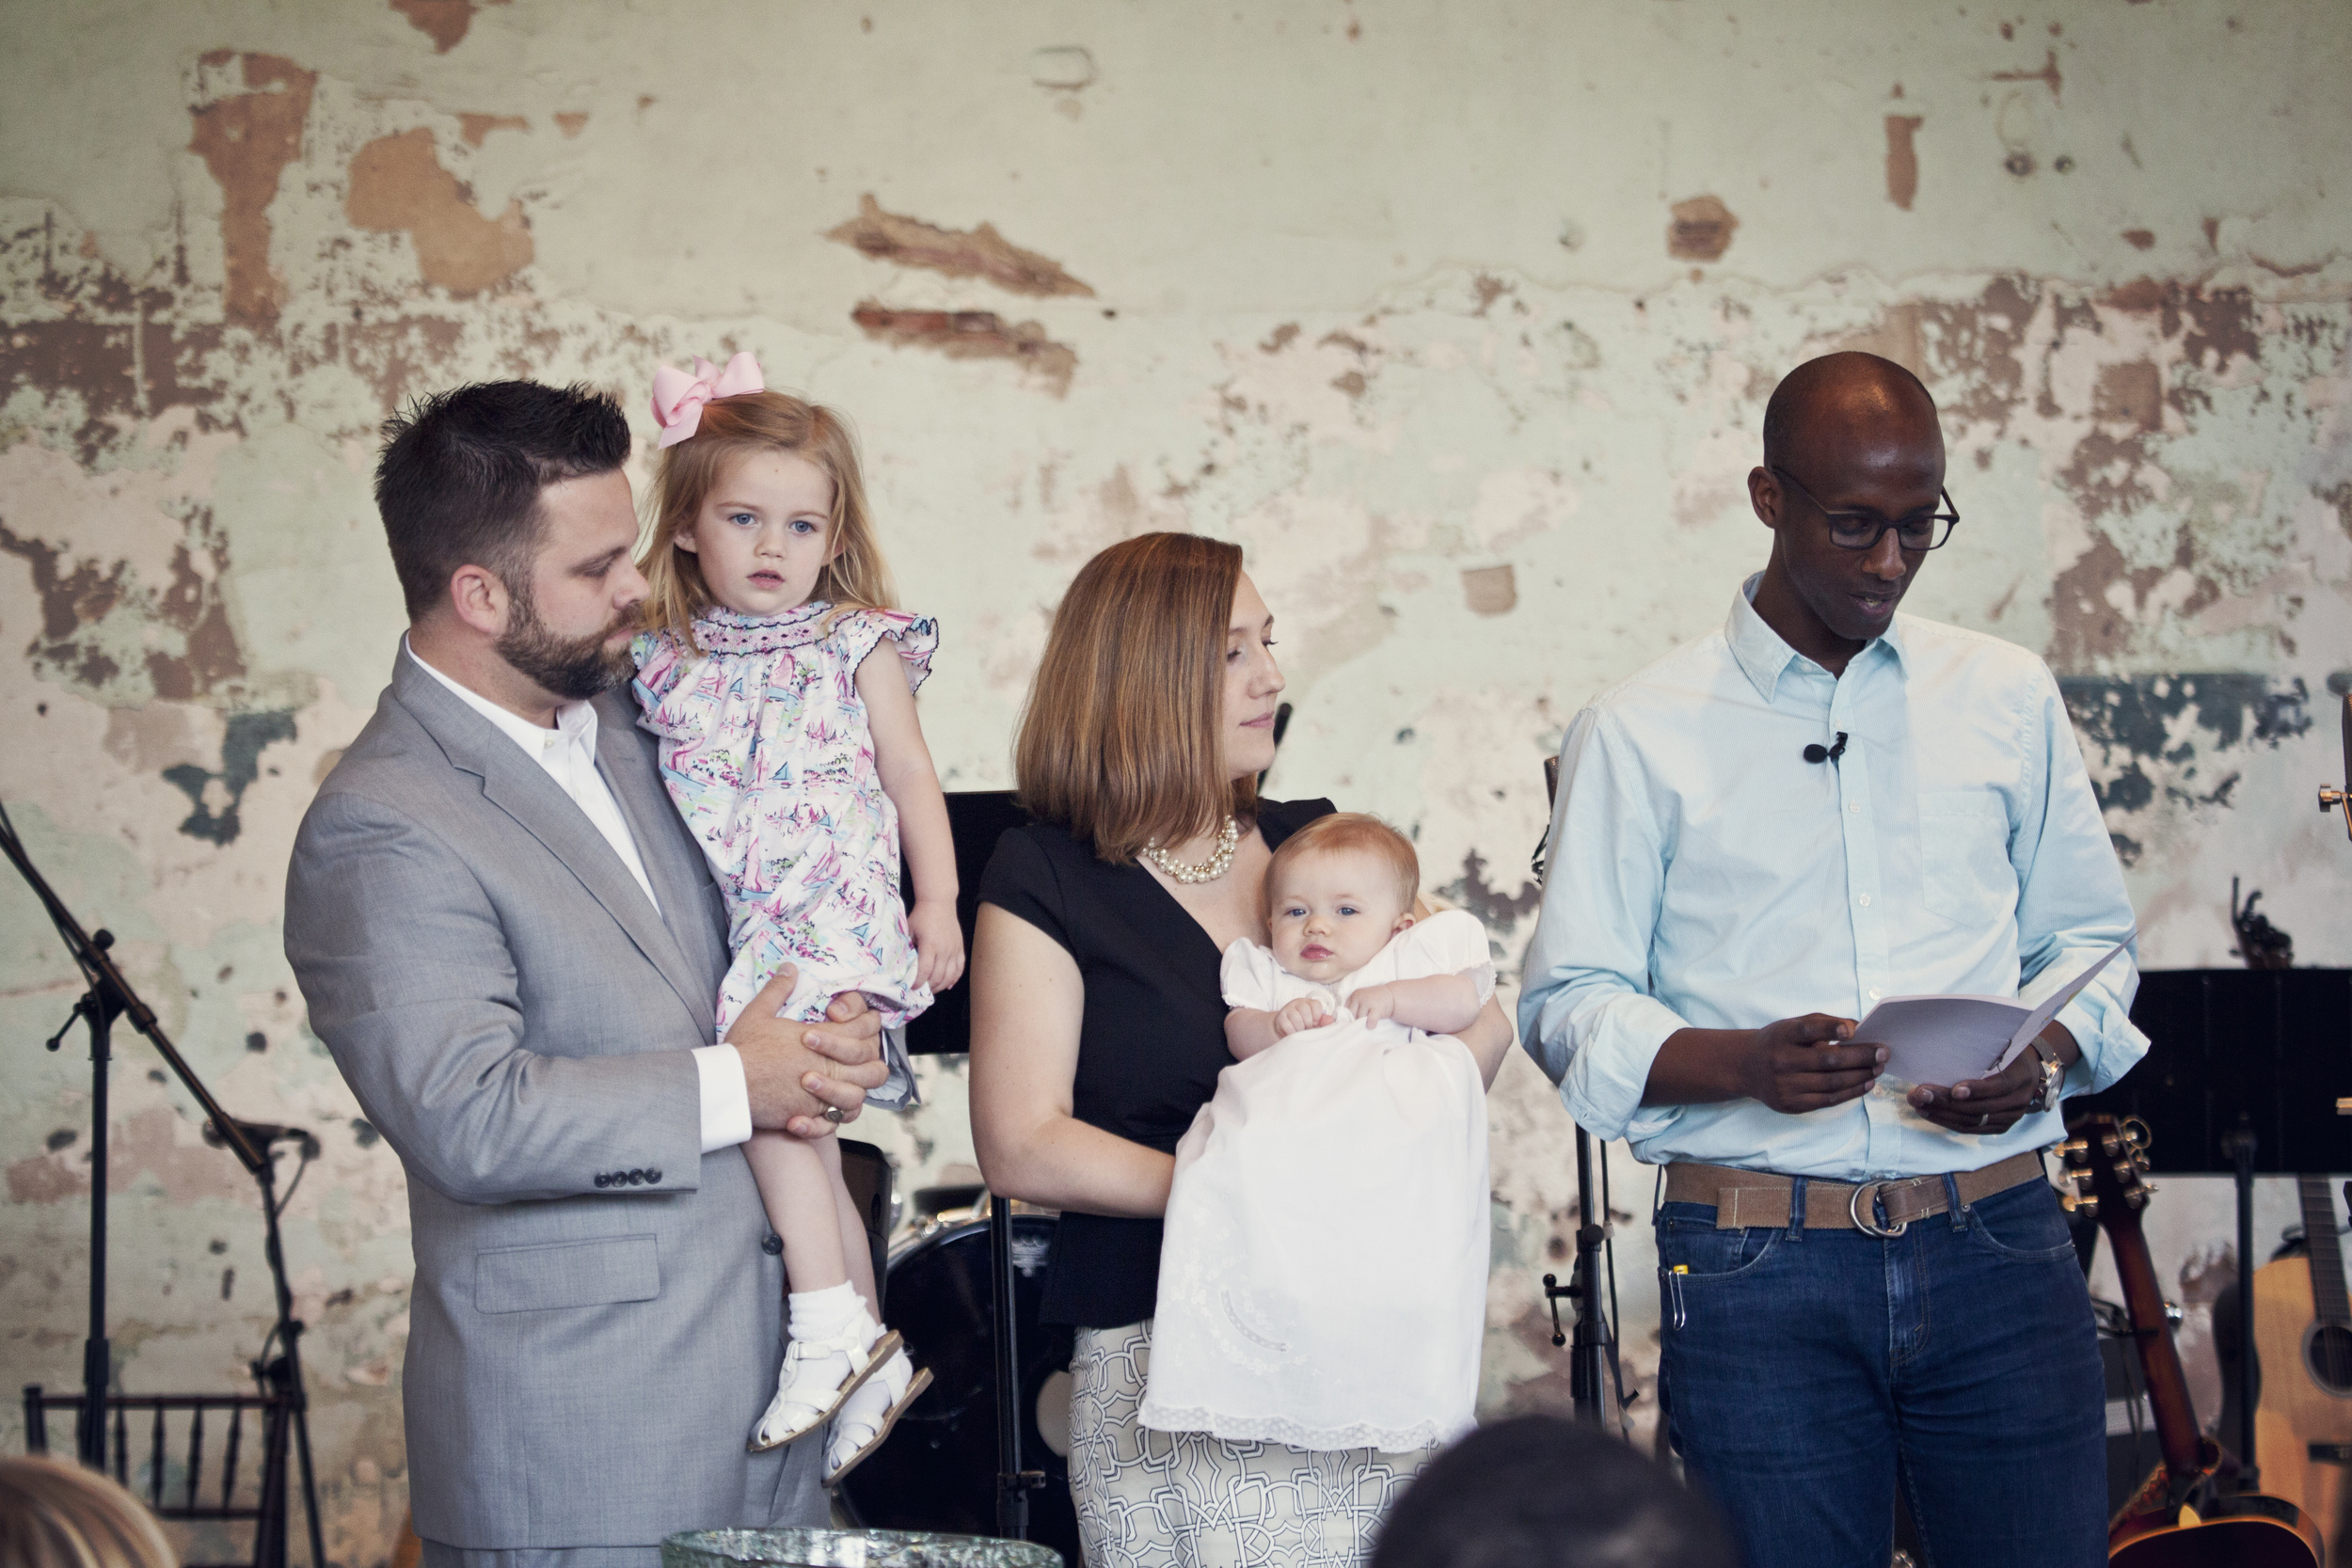 She's got a good lookin' family! And her youngest, olivia, was baptized earlier this year.